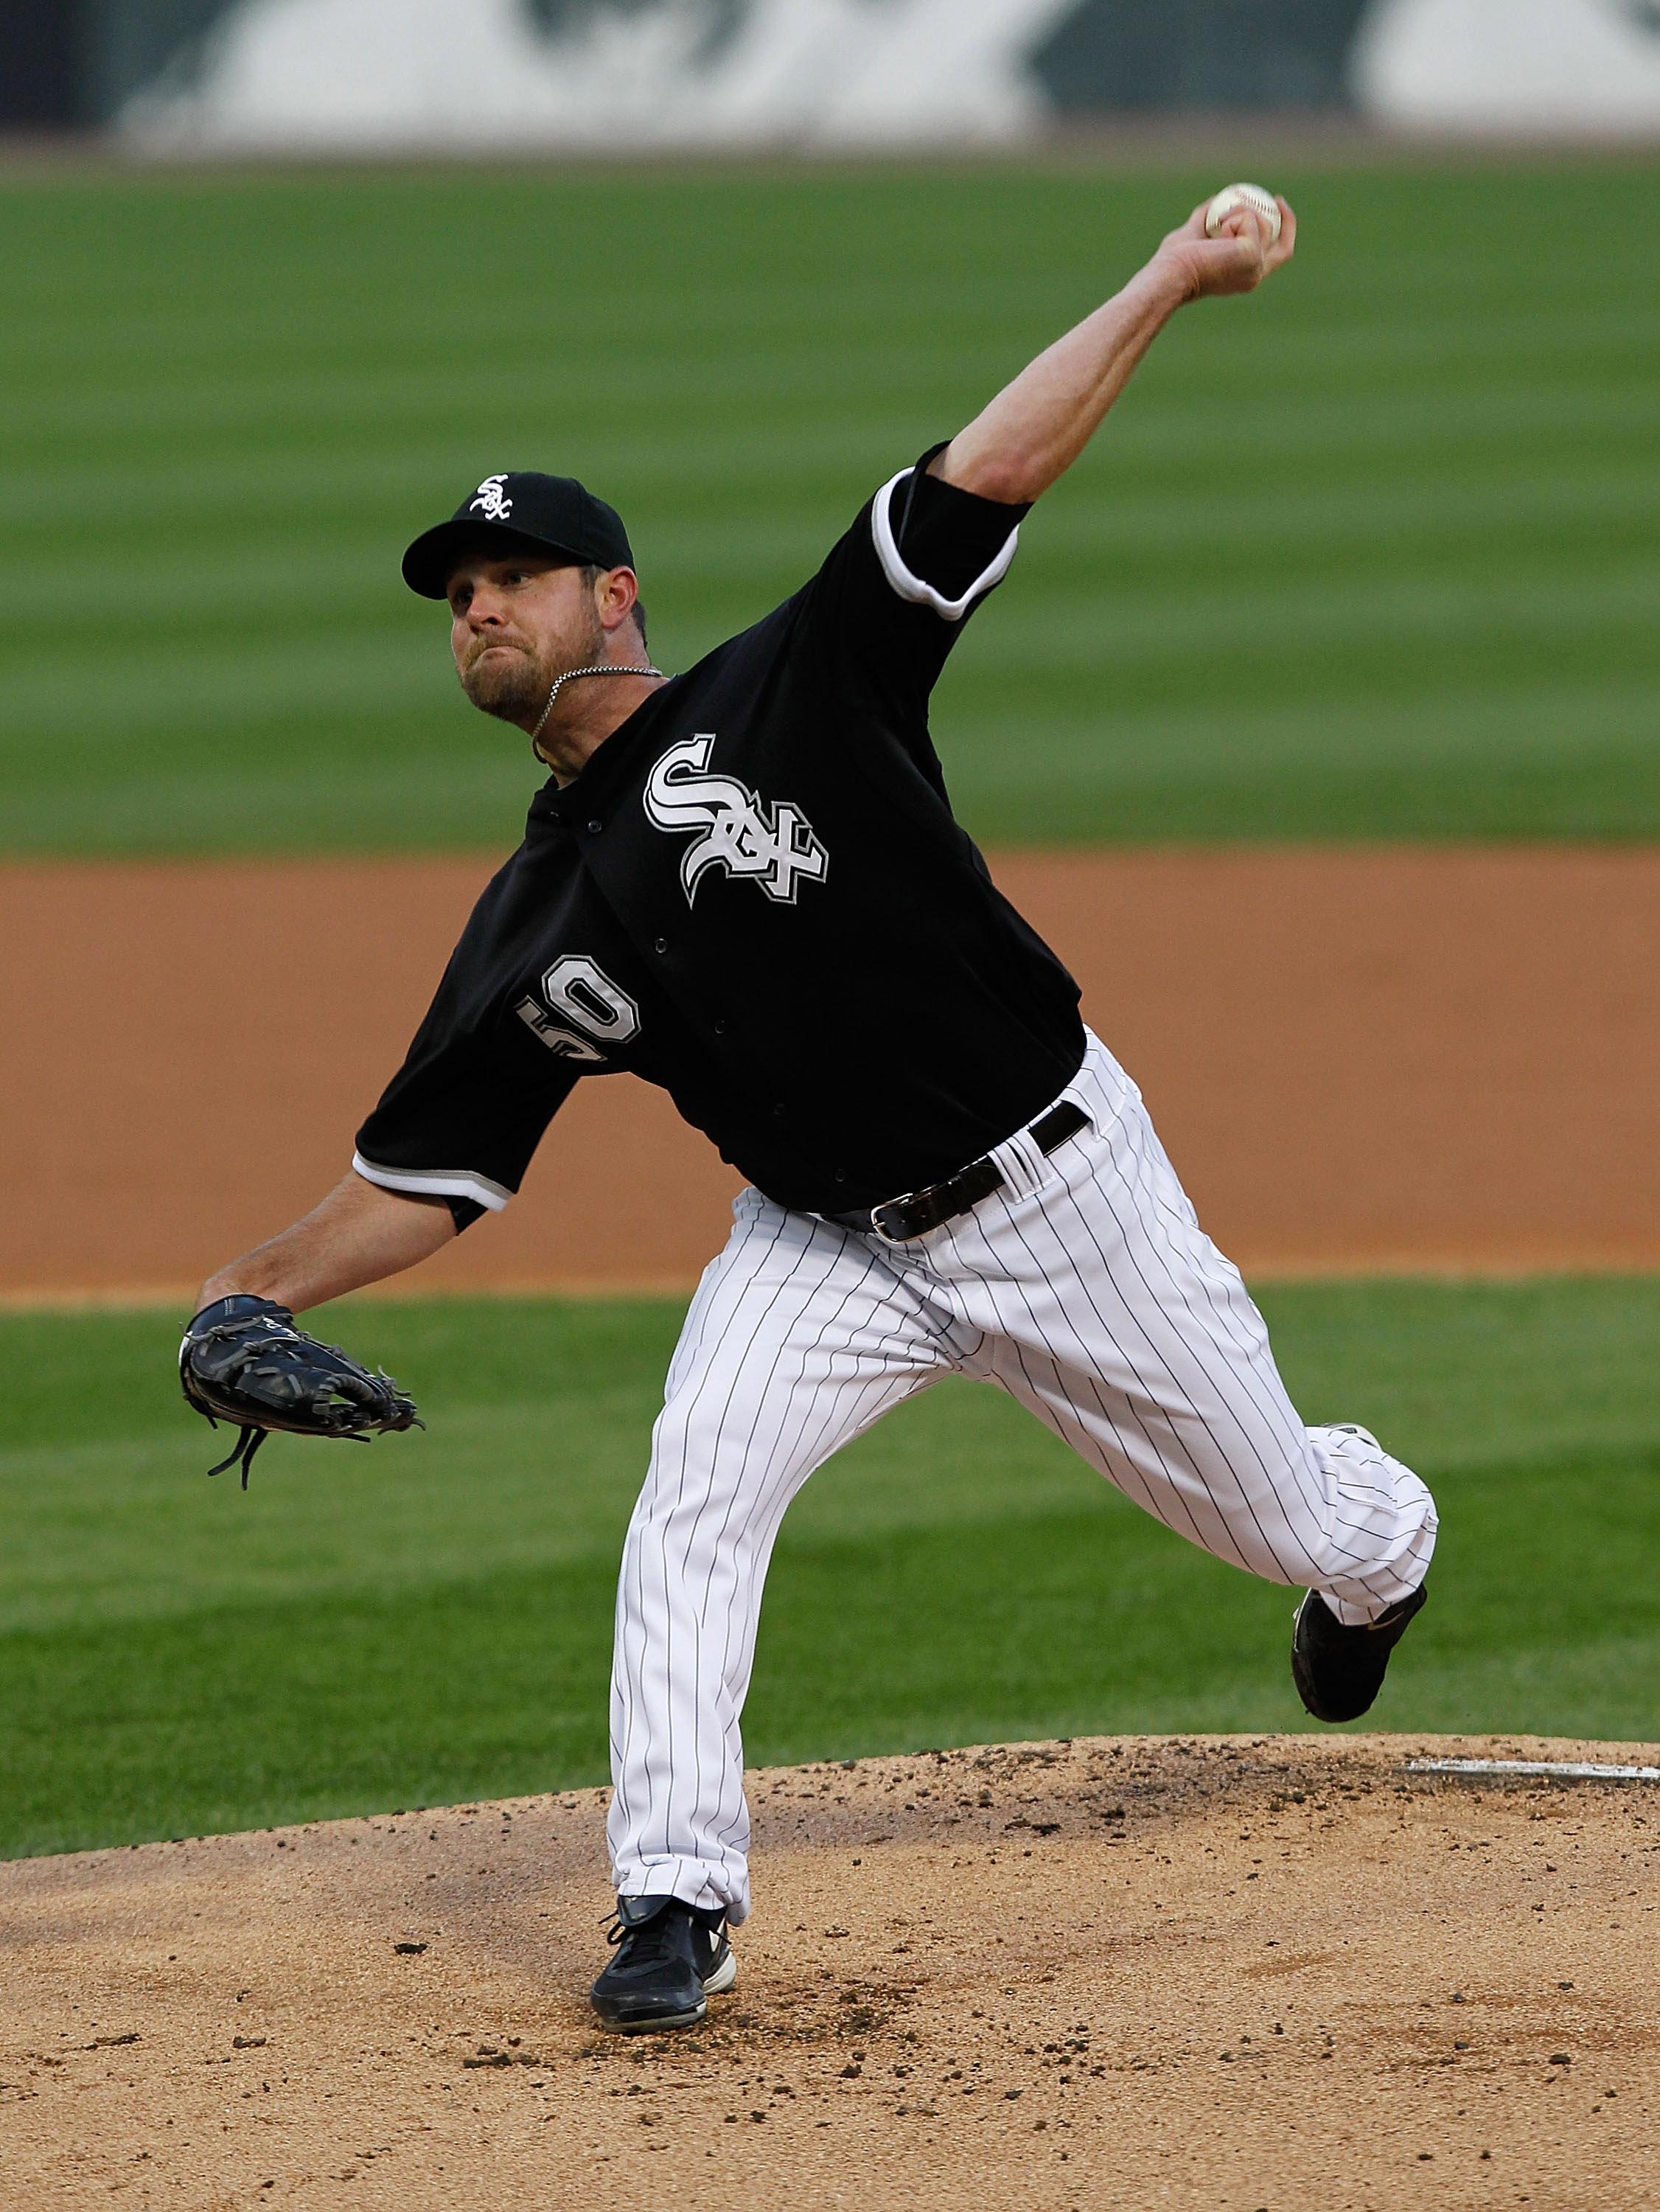 CHICAGO - MAY 06: Starting pitcher John Danks #50 of the Chicago White Sox delivers the ball against the Toronto Blue Jays at U.S. Cellular Field on May 6, 2010 in Chicago, Illinois. (Photo by Jonathan Daniel/Getty Images)